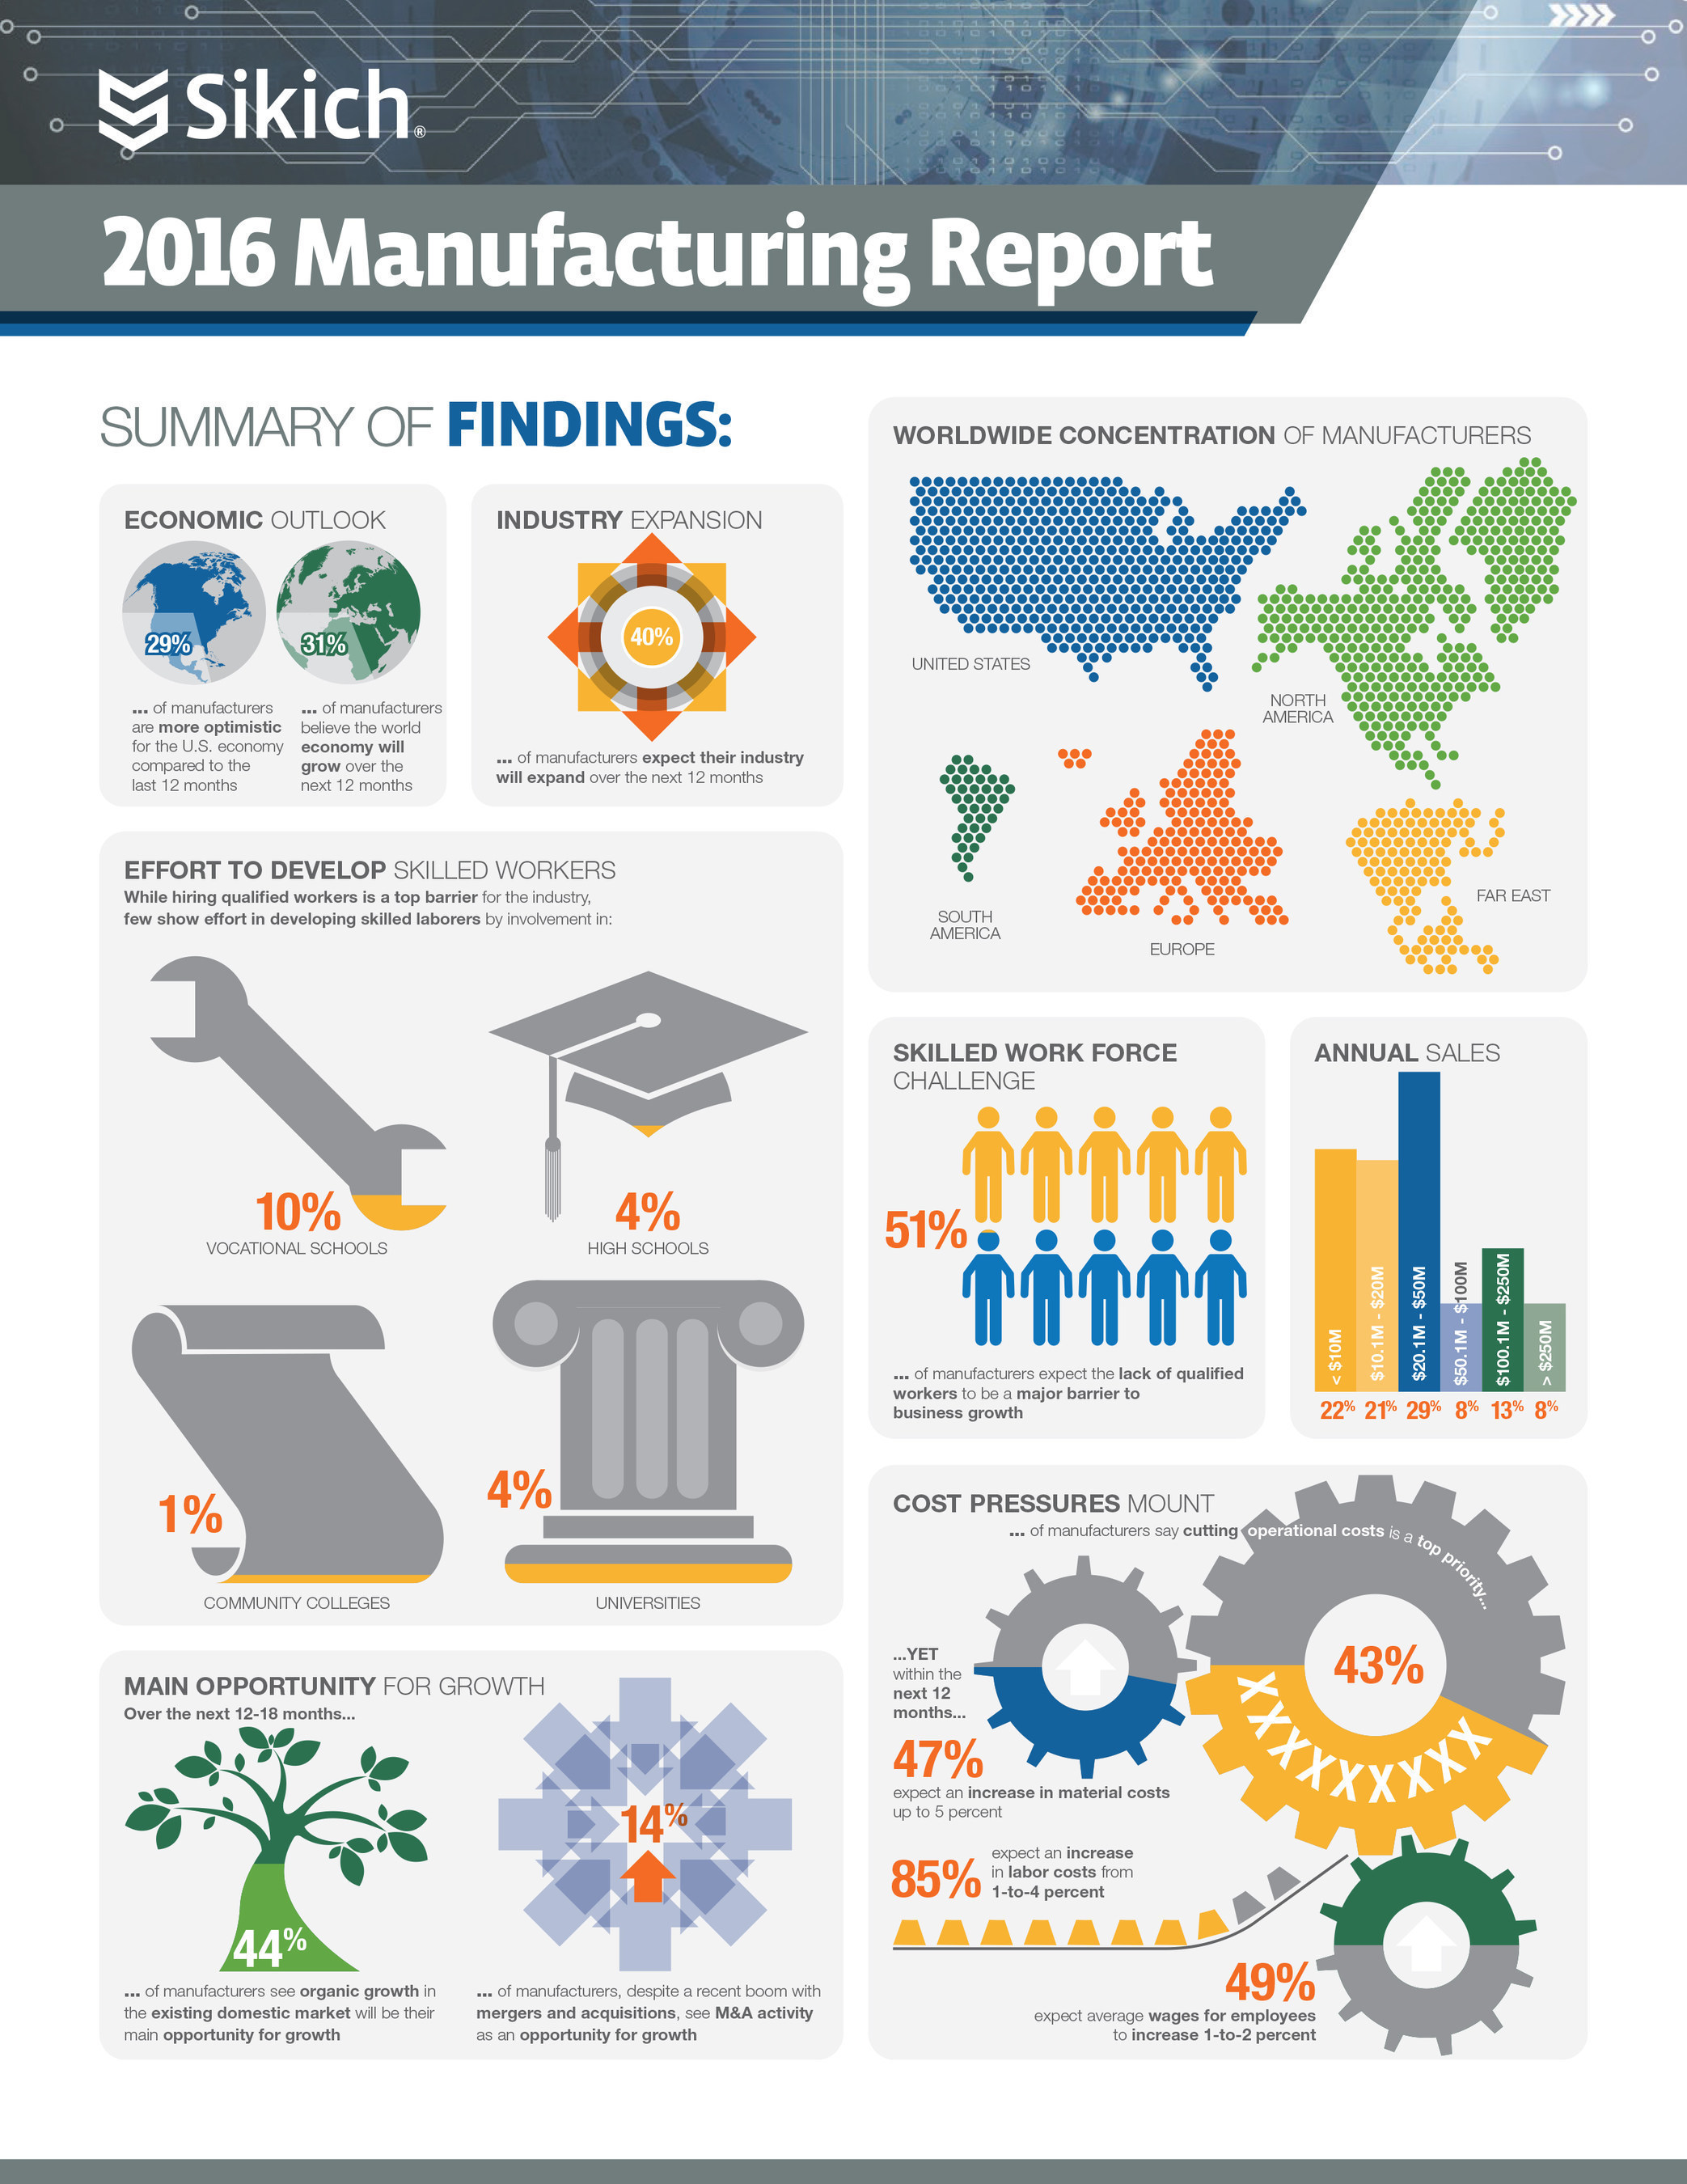 The 2016 Manufacturing Report from professional services firm Sikich LLP includes data on manufacturers' economic outlook, strategic priorities, views on the workforce and more.